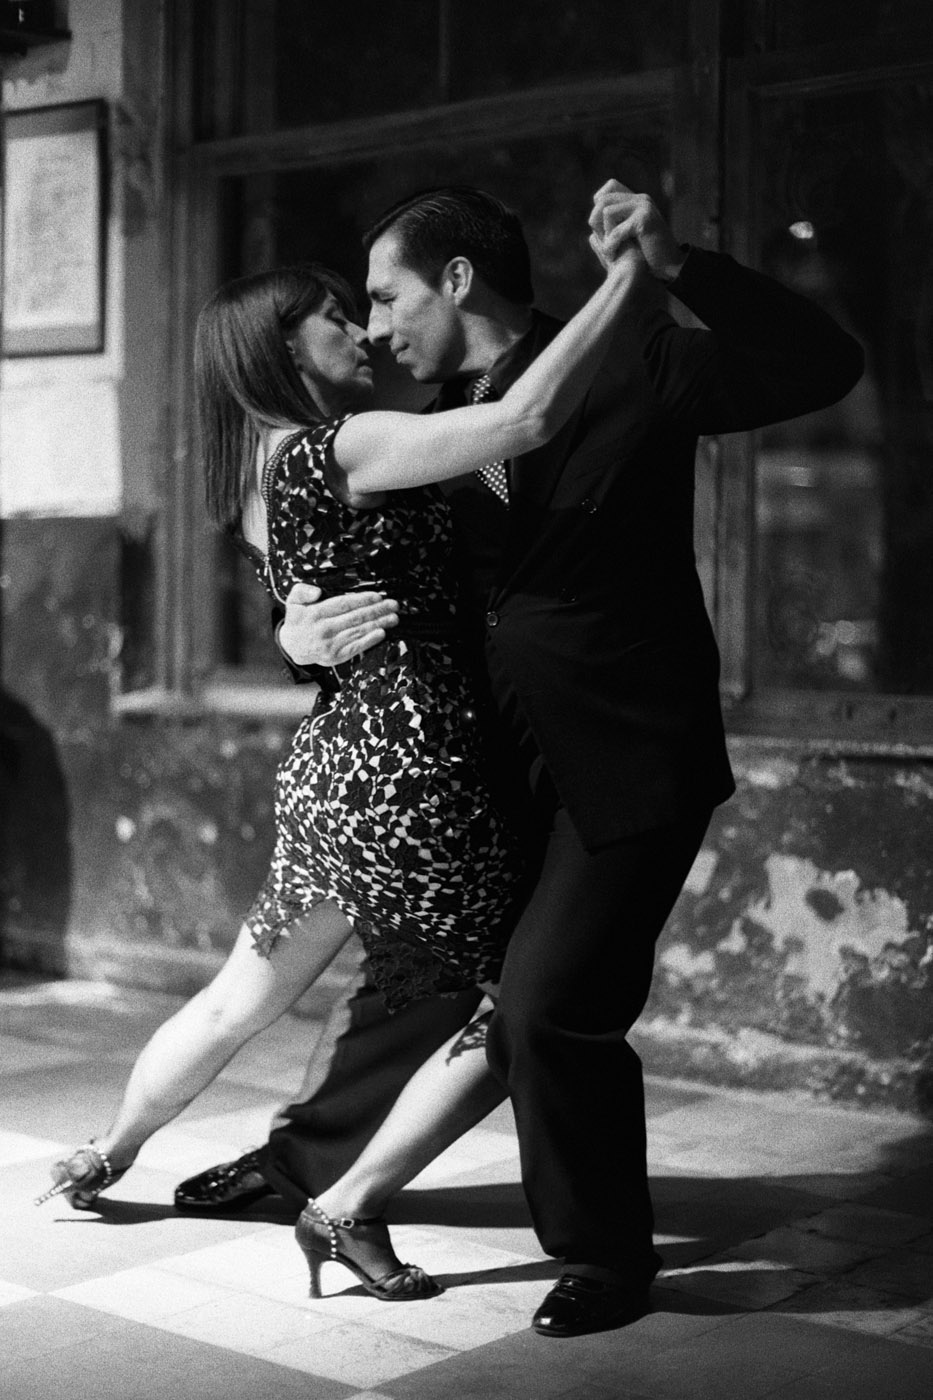 The postcard representation of tango